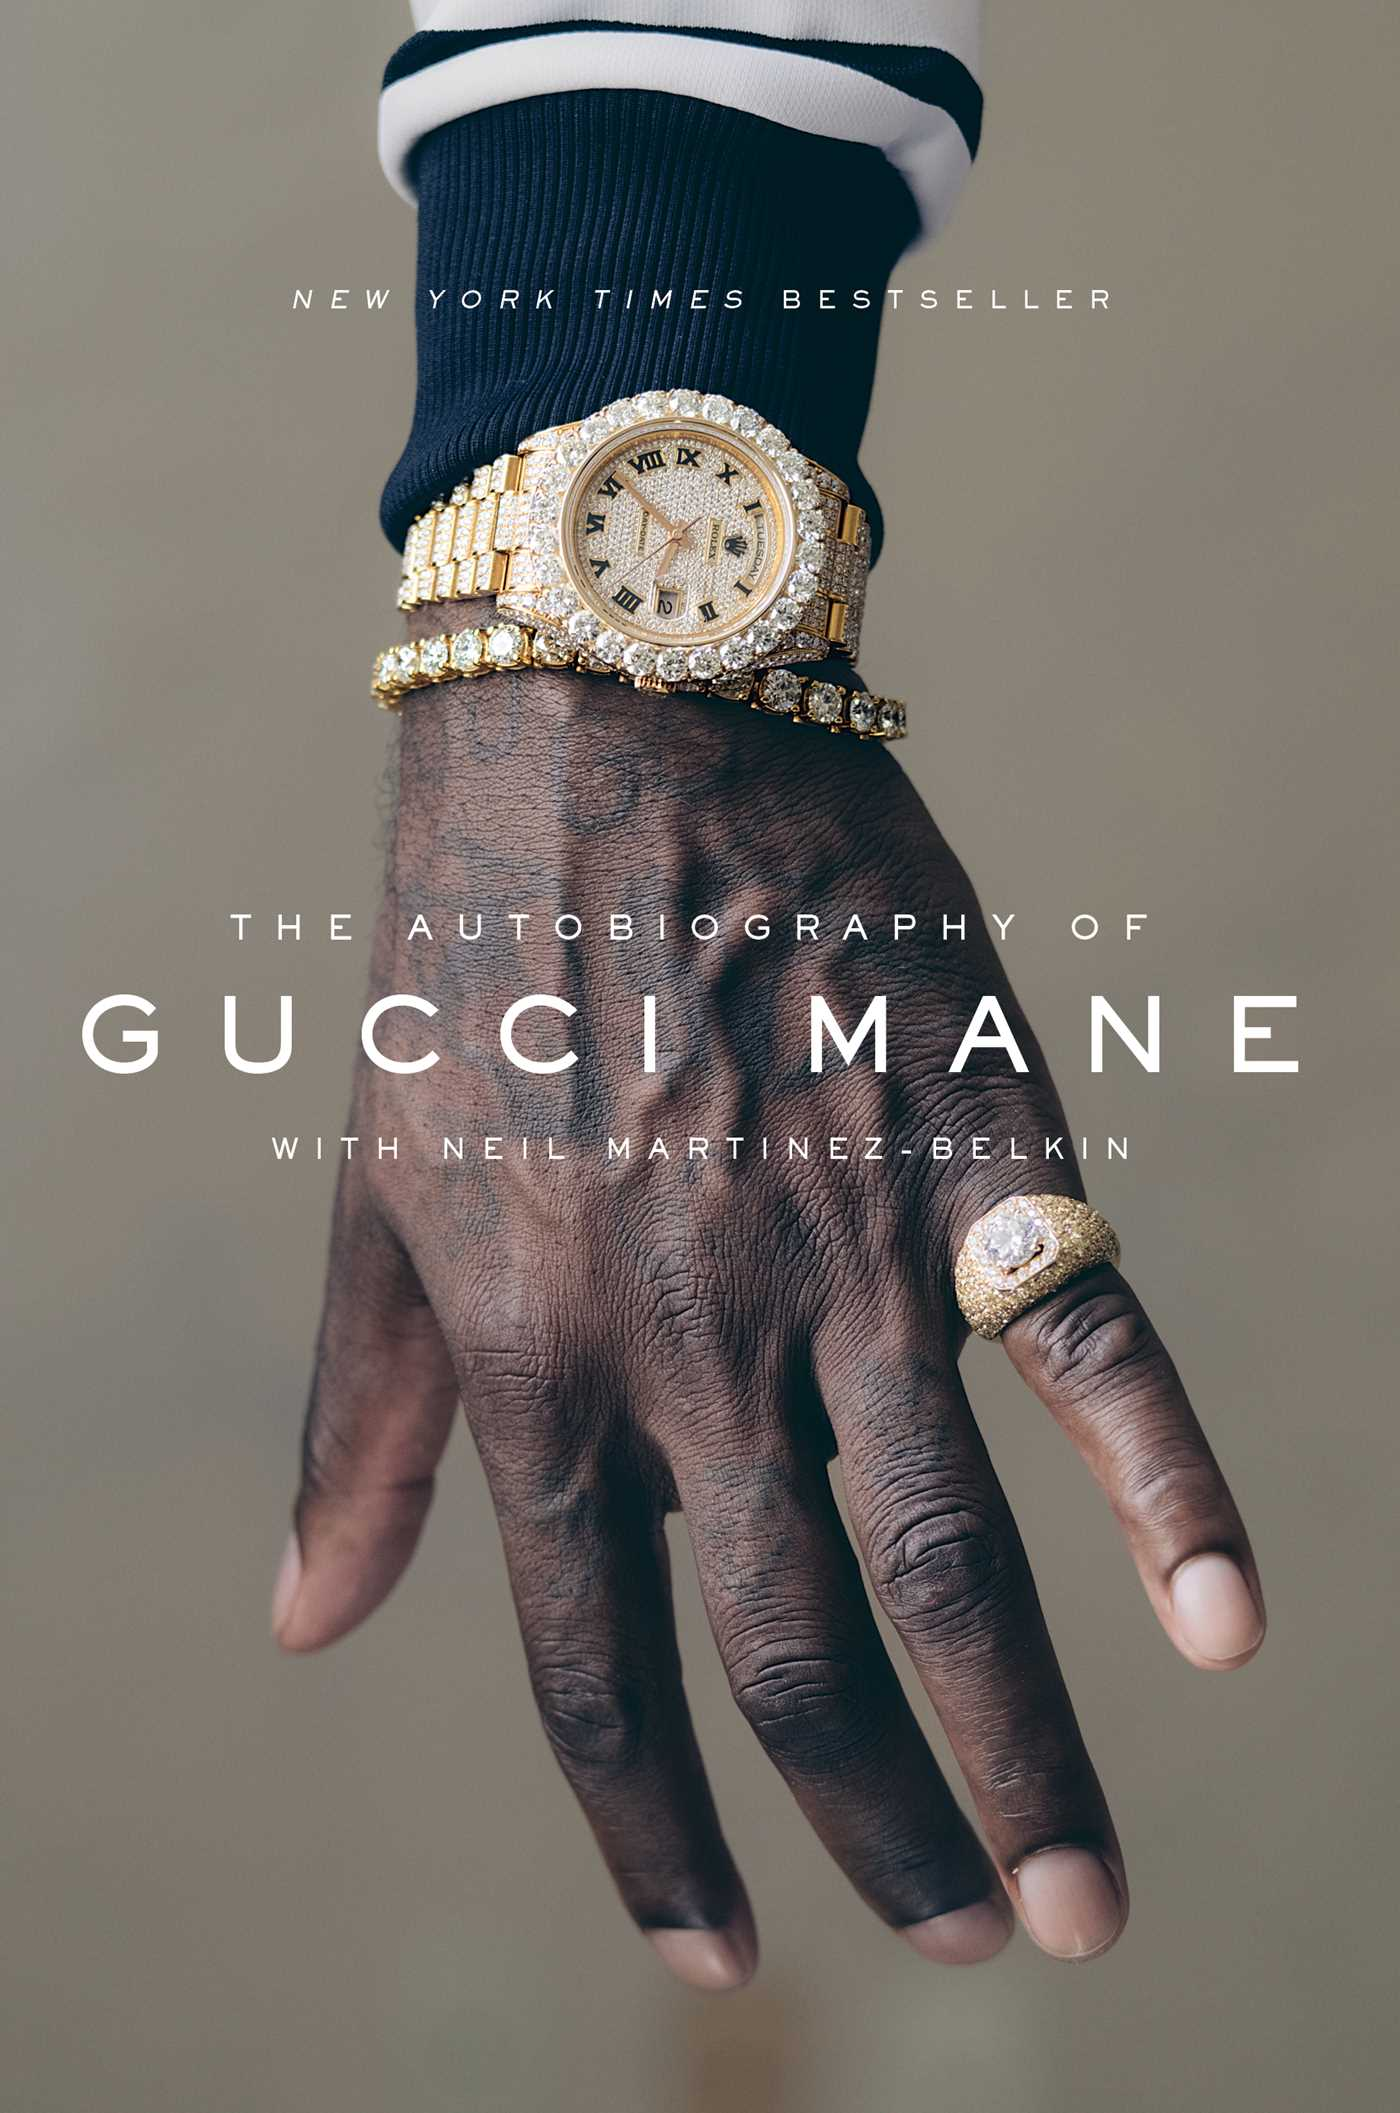 The autobiography of gucci mane 9781501165320 hr